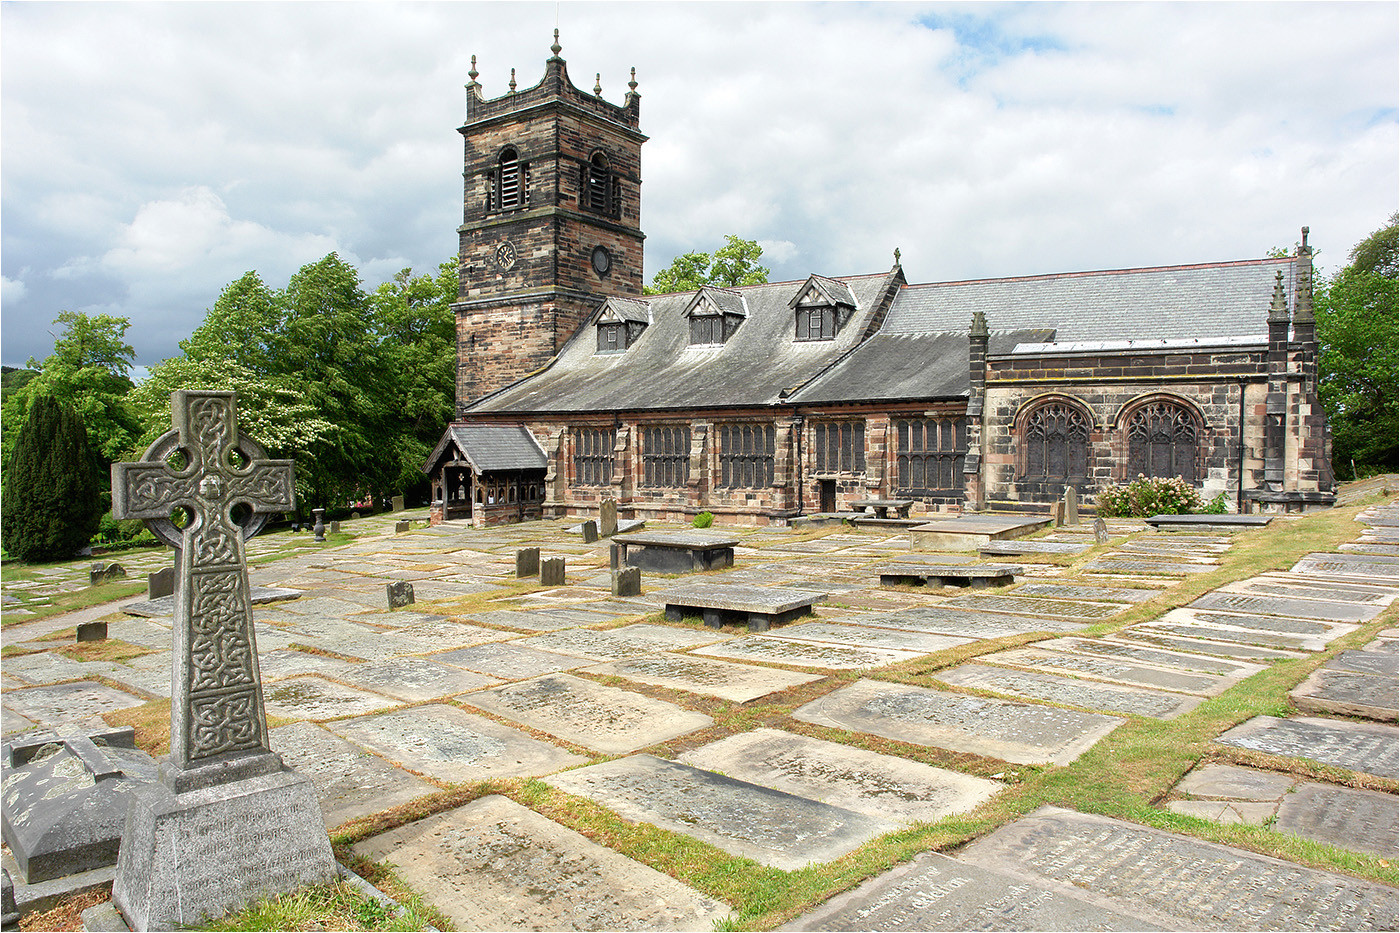 16 ST MARY ROSTHERNE GRAVEYARD by Brian Whiston